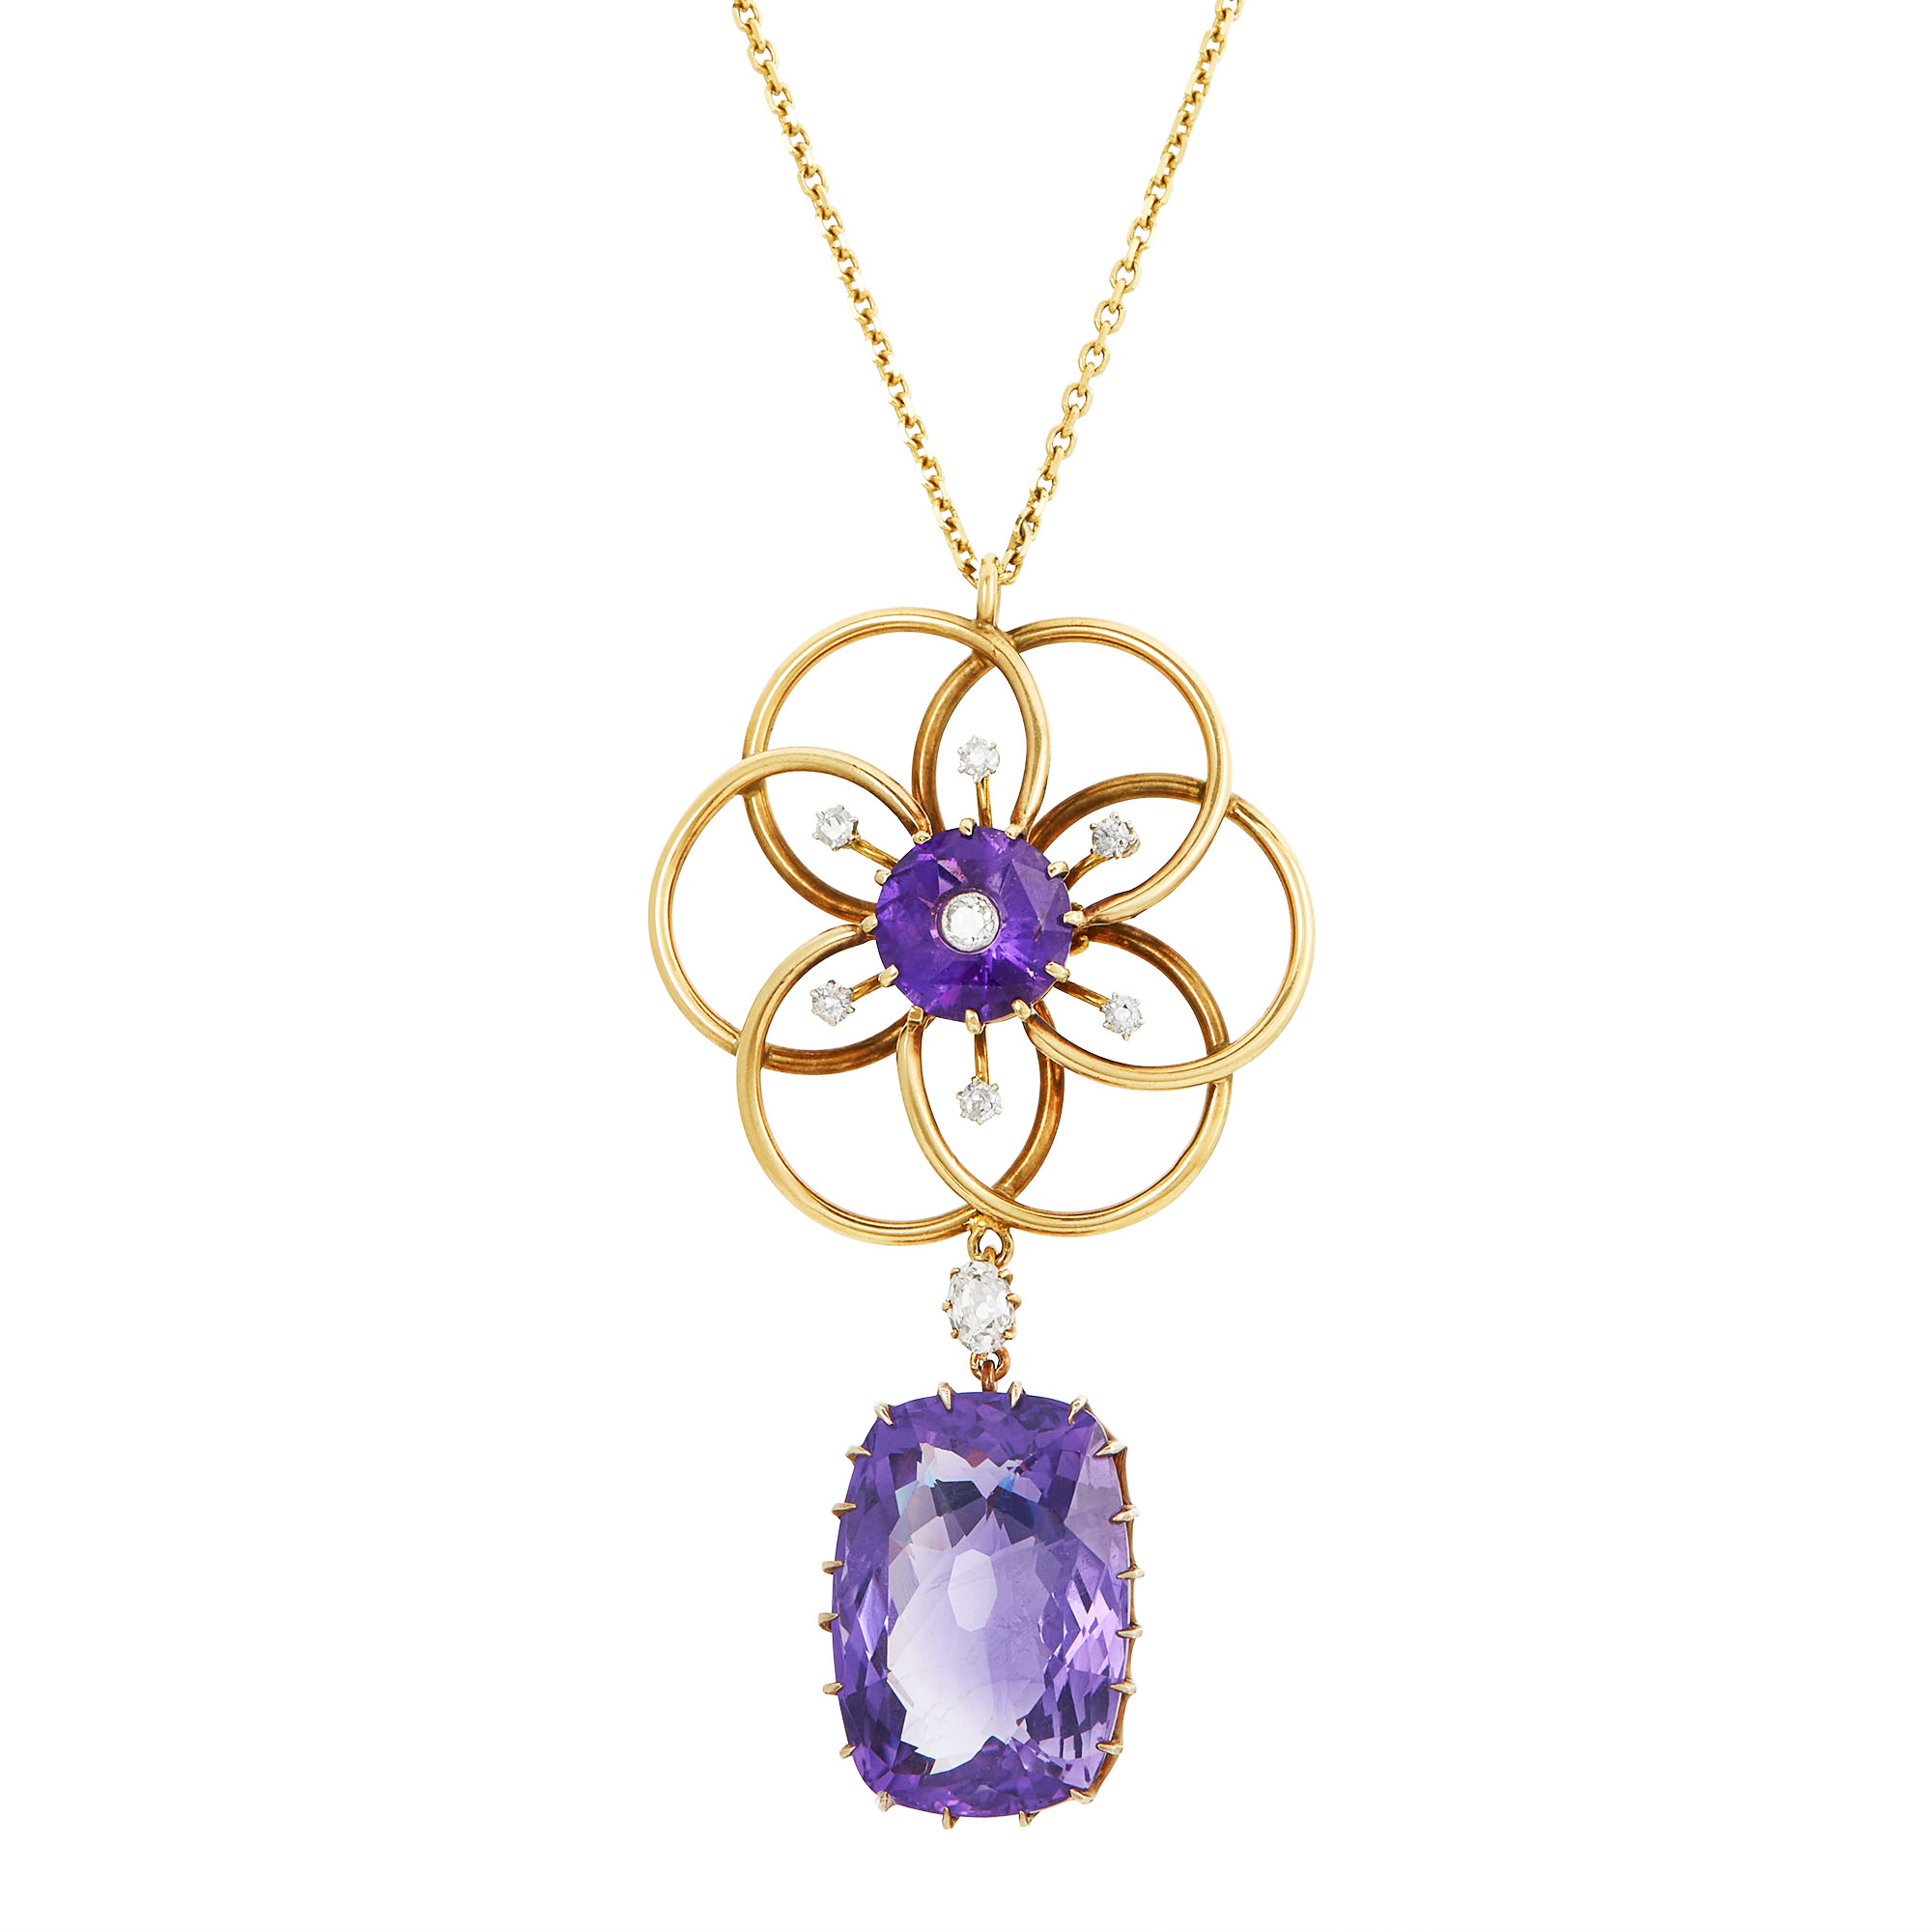 Lot image - Antique Low Karat Gold, Gilt-Silver, Amethyst and Diamond Pendant with Chain Necklace